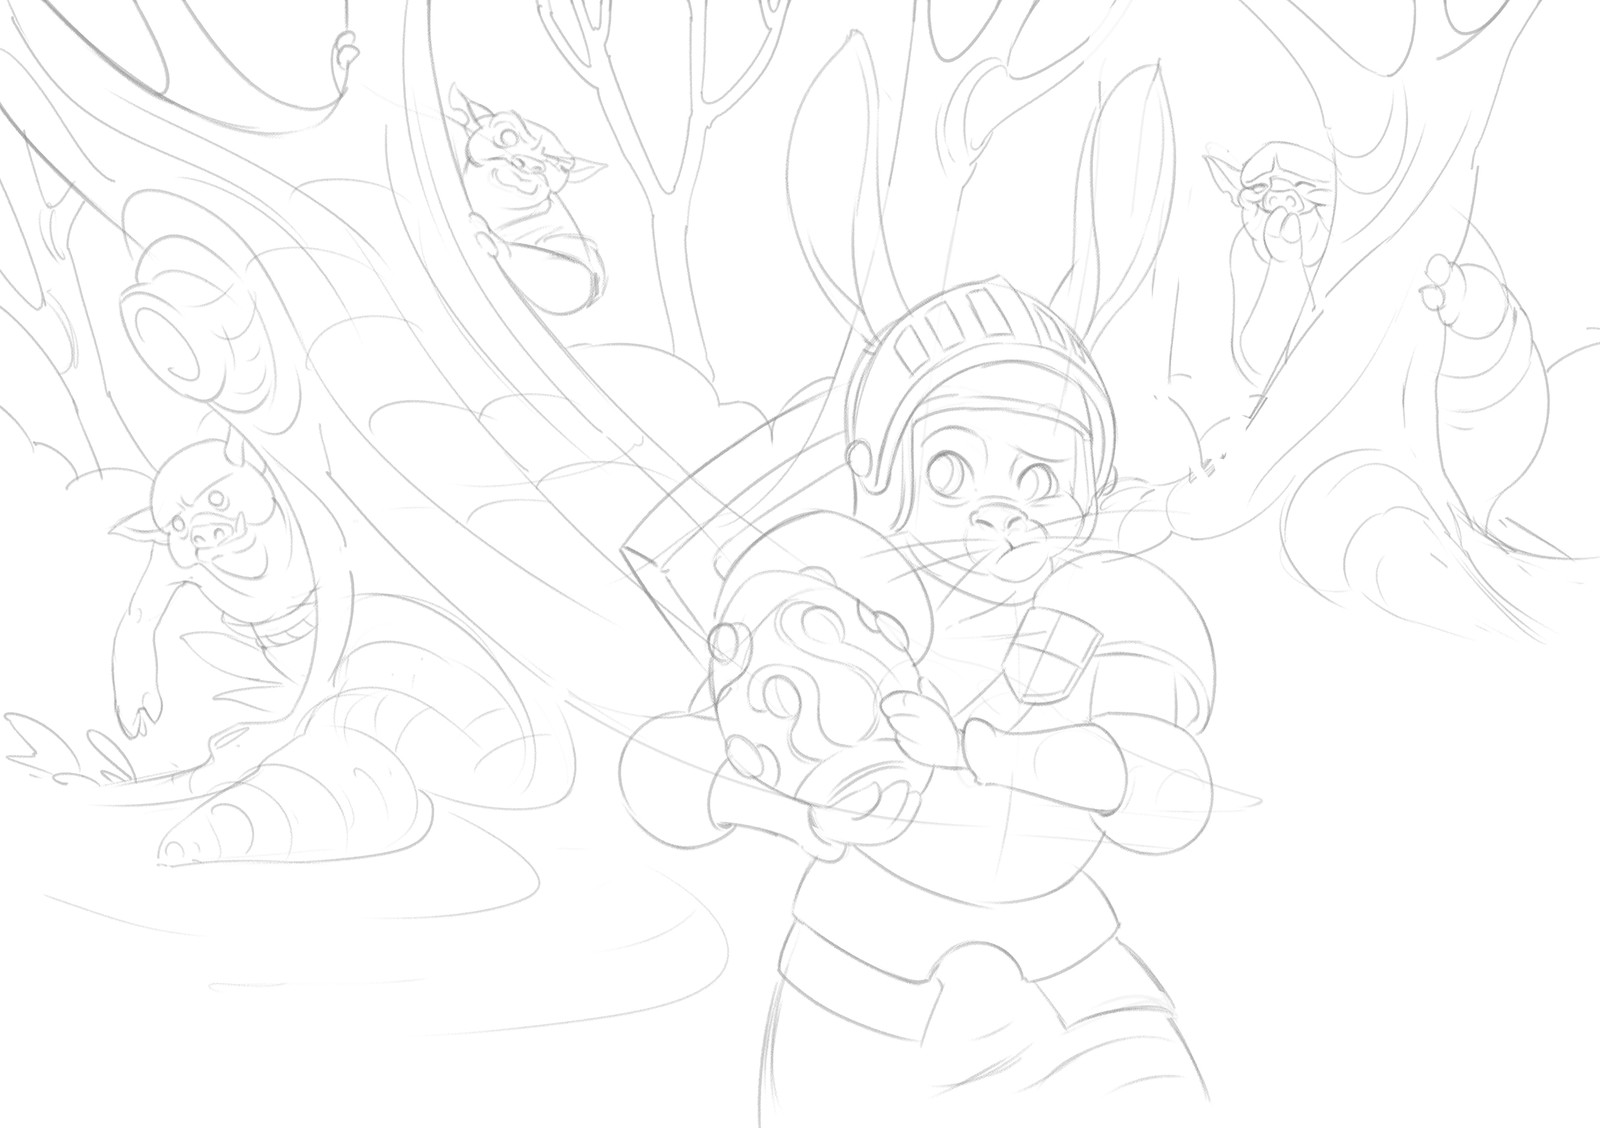 In the first step I draw a clean line drawing on top of the sketch. Having a good drawing to start from helps me a lot, especially for the workflow I've chosen for this painting.